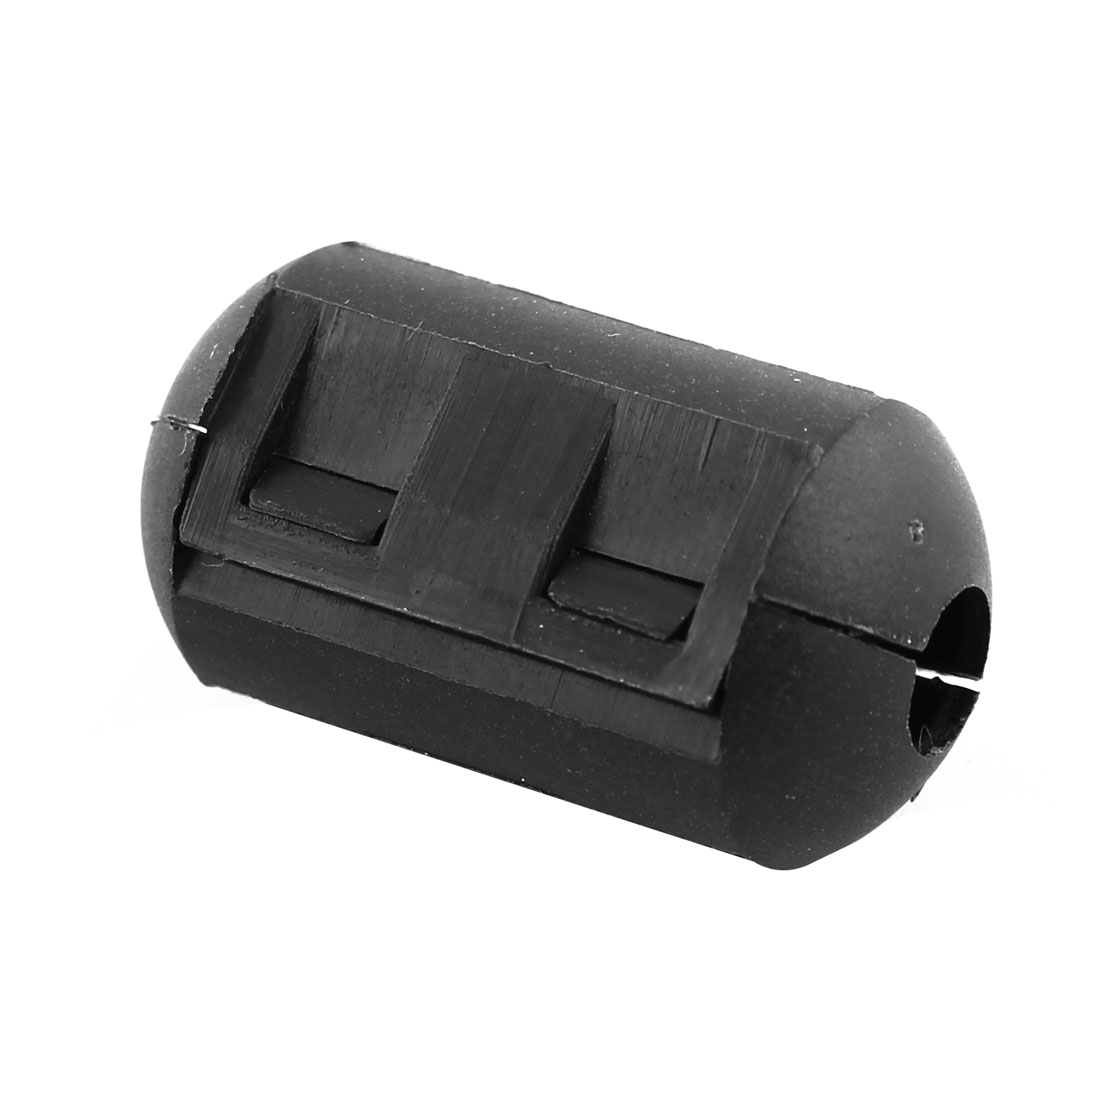 Black Plastic Casing Ferrite Core Clamp Filter UF70B